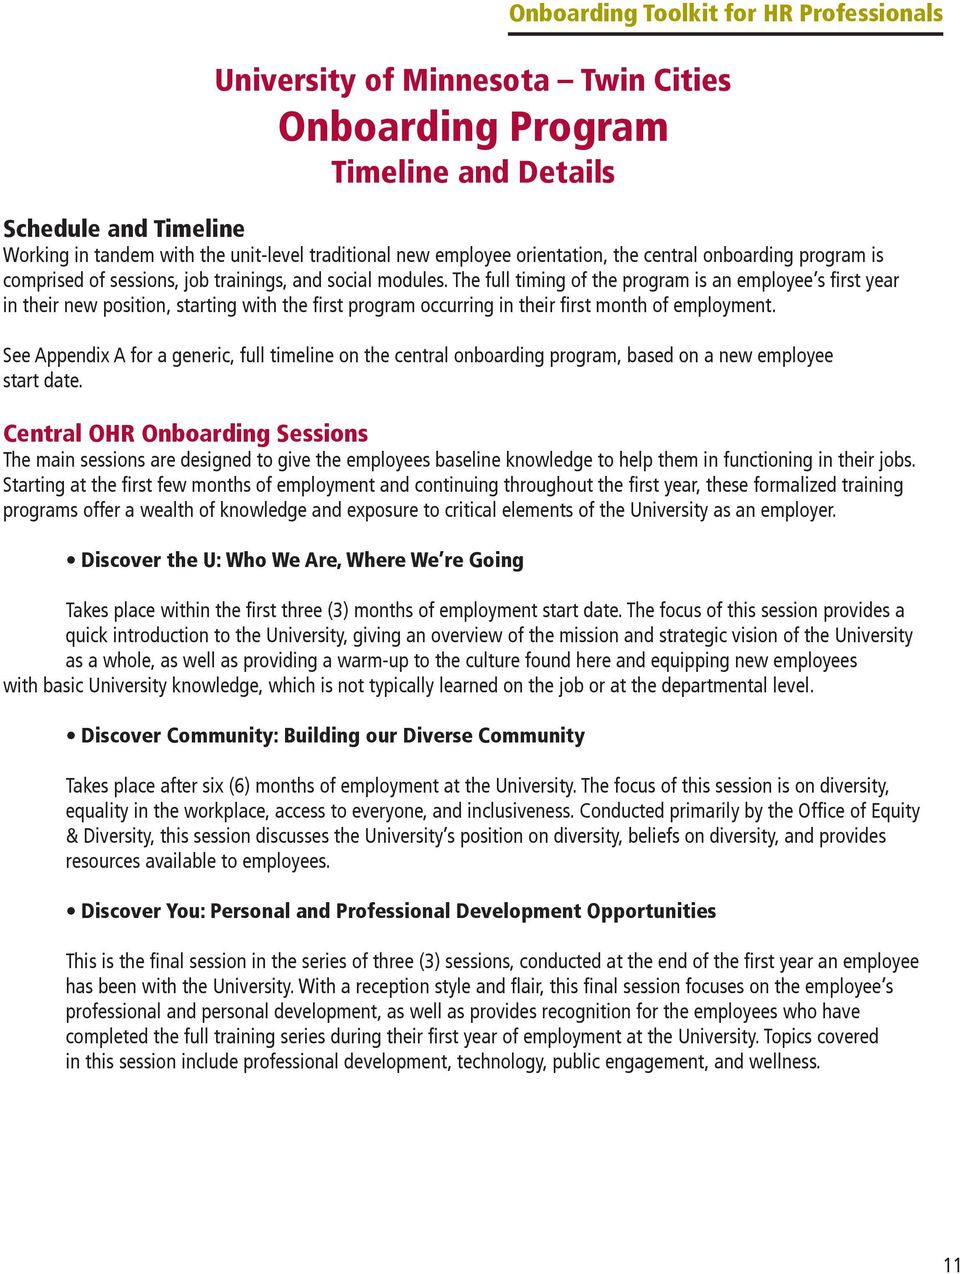 Onboarding Toolkit for HR Professionals Onboarding Toolkit for HR ...